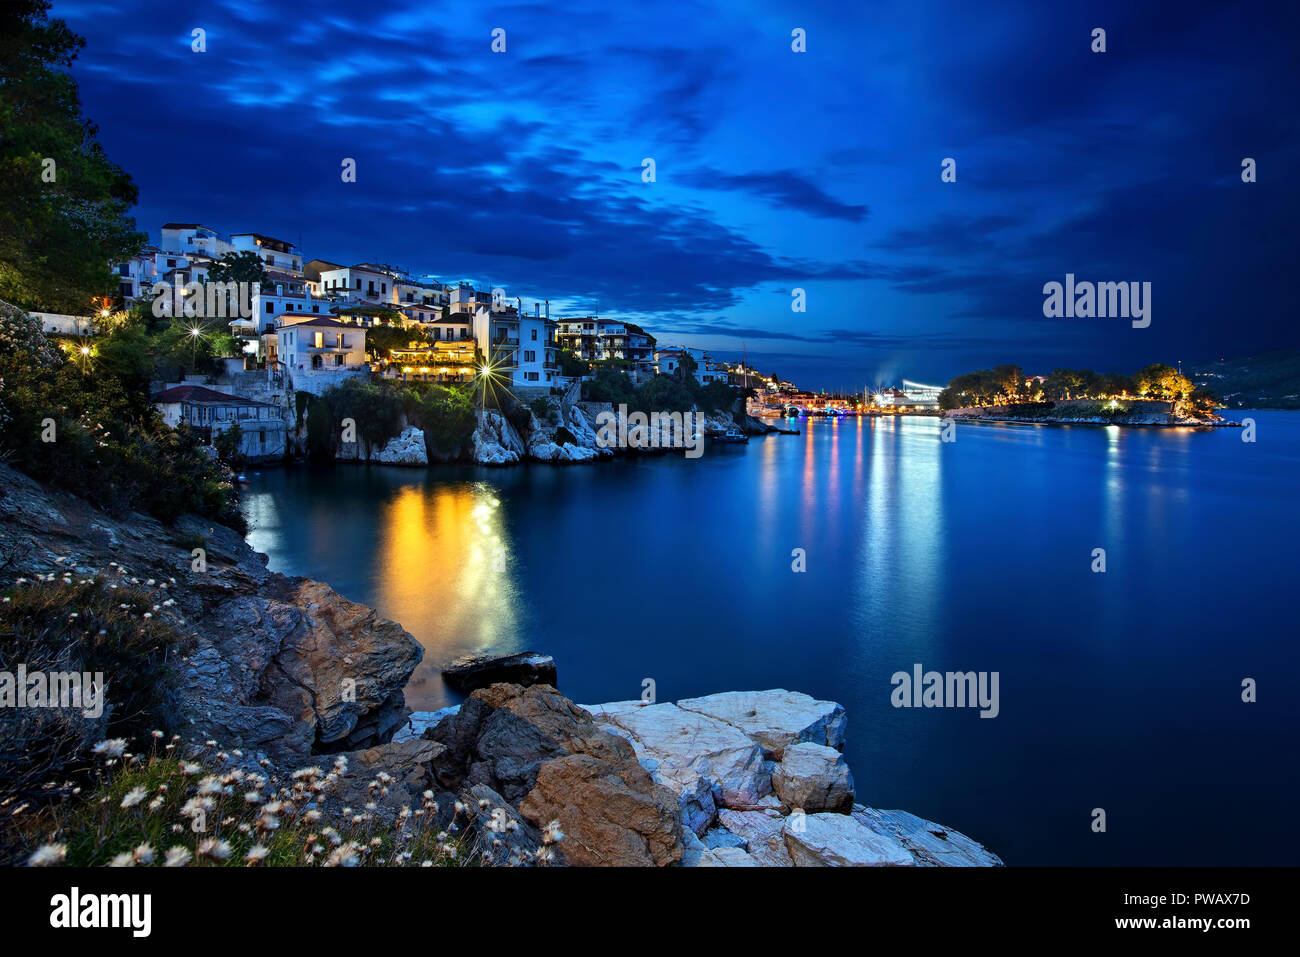 Night view of Plakes, the oldest neighborhood of Skiathos town, Skiathos island, Greece. To the right, you can see Bourtzi castle. Stock Photo